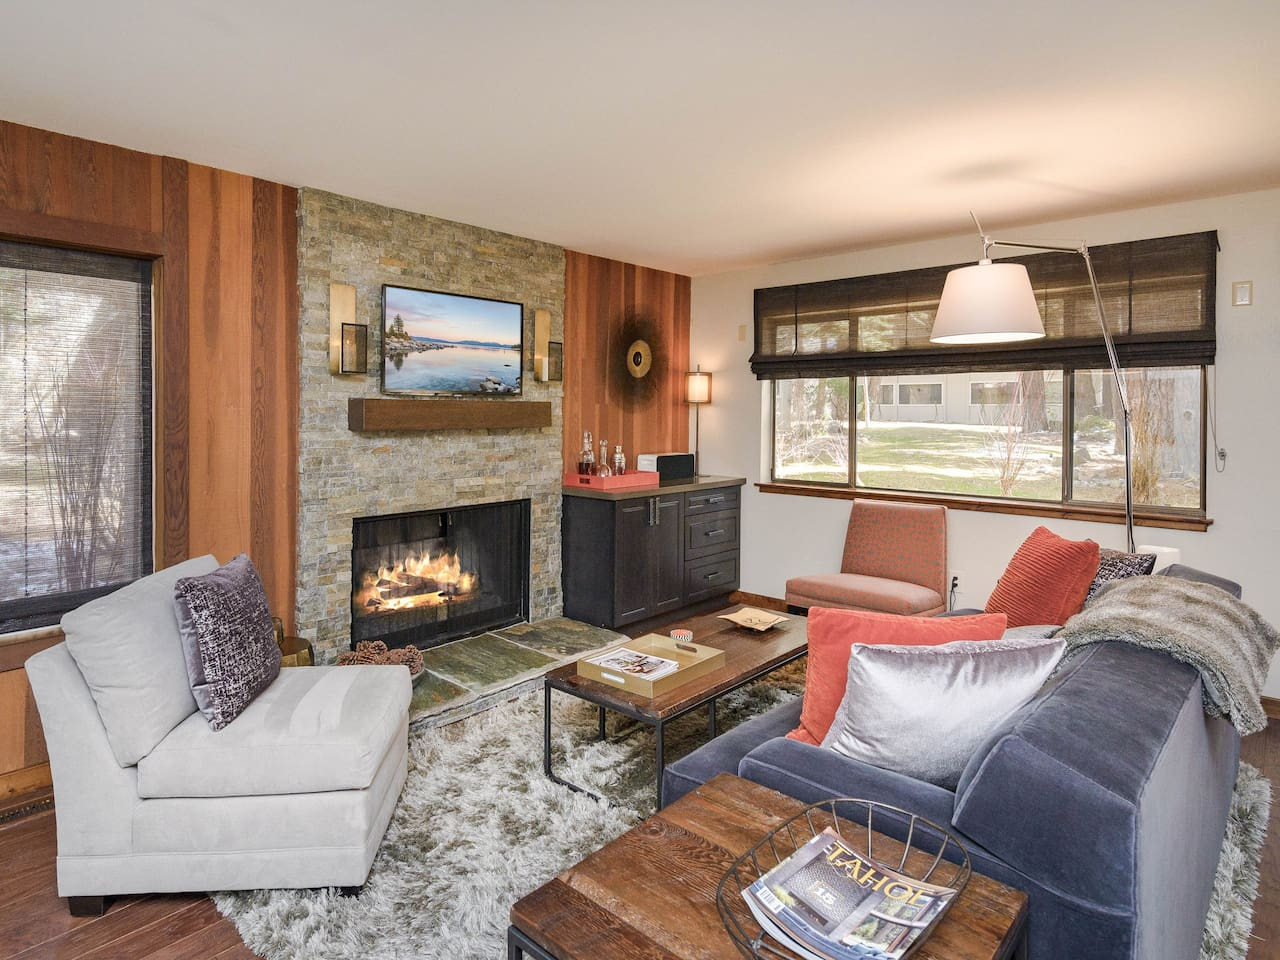 Welcome to Incline Village! This condo is professionally managed by TurnKey Vacation Rentals.